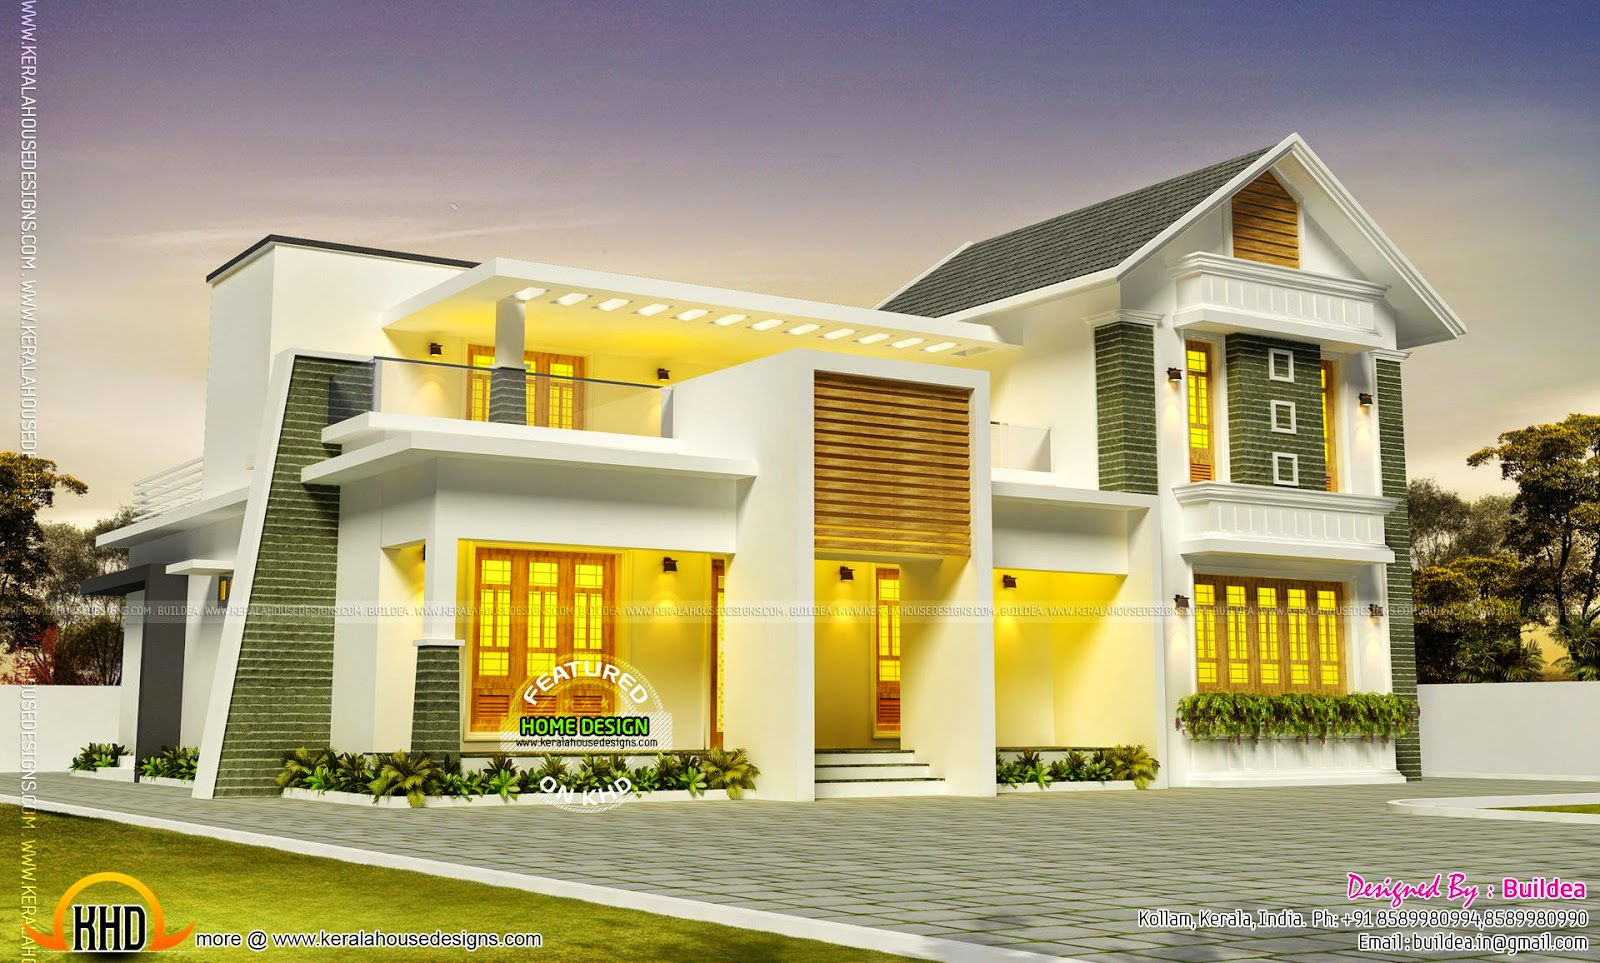 Beautiful house design in kollam kerala home design and for Www homedesign com